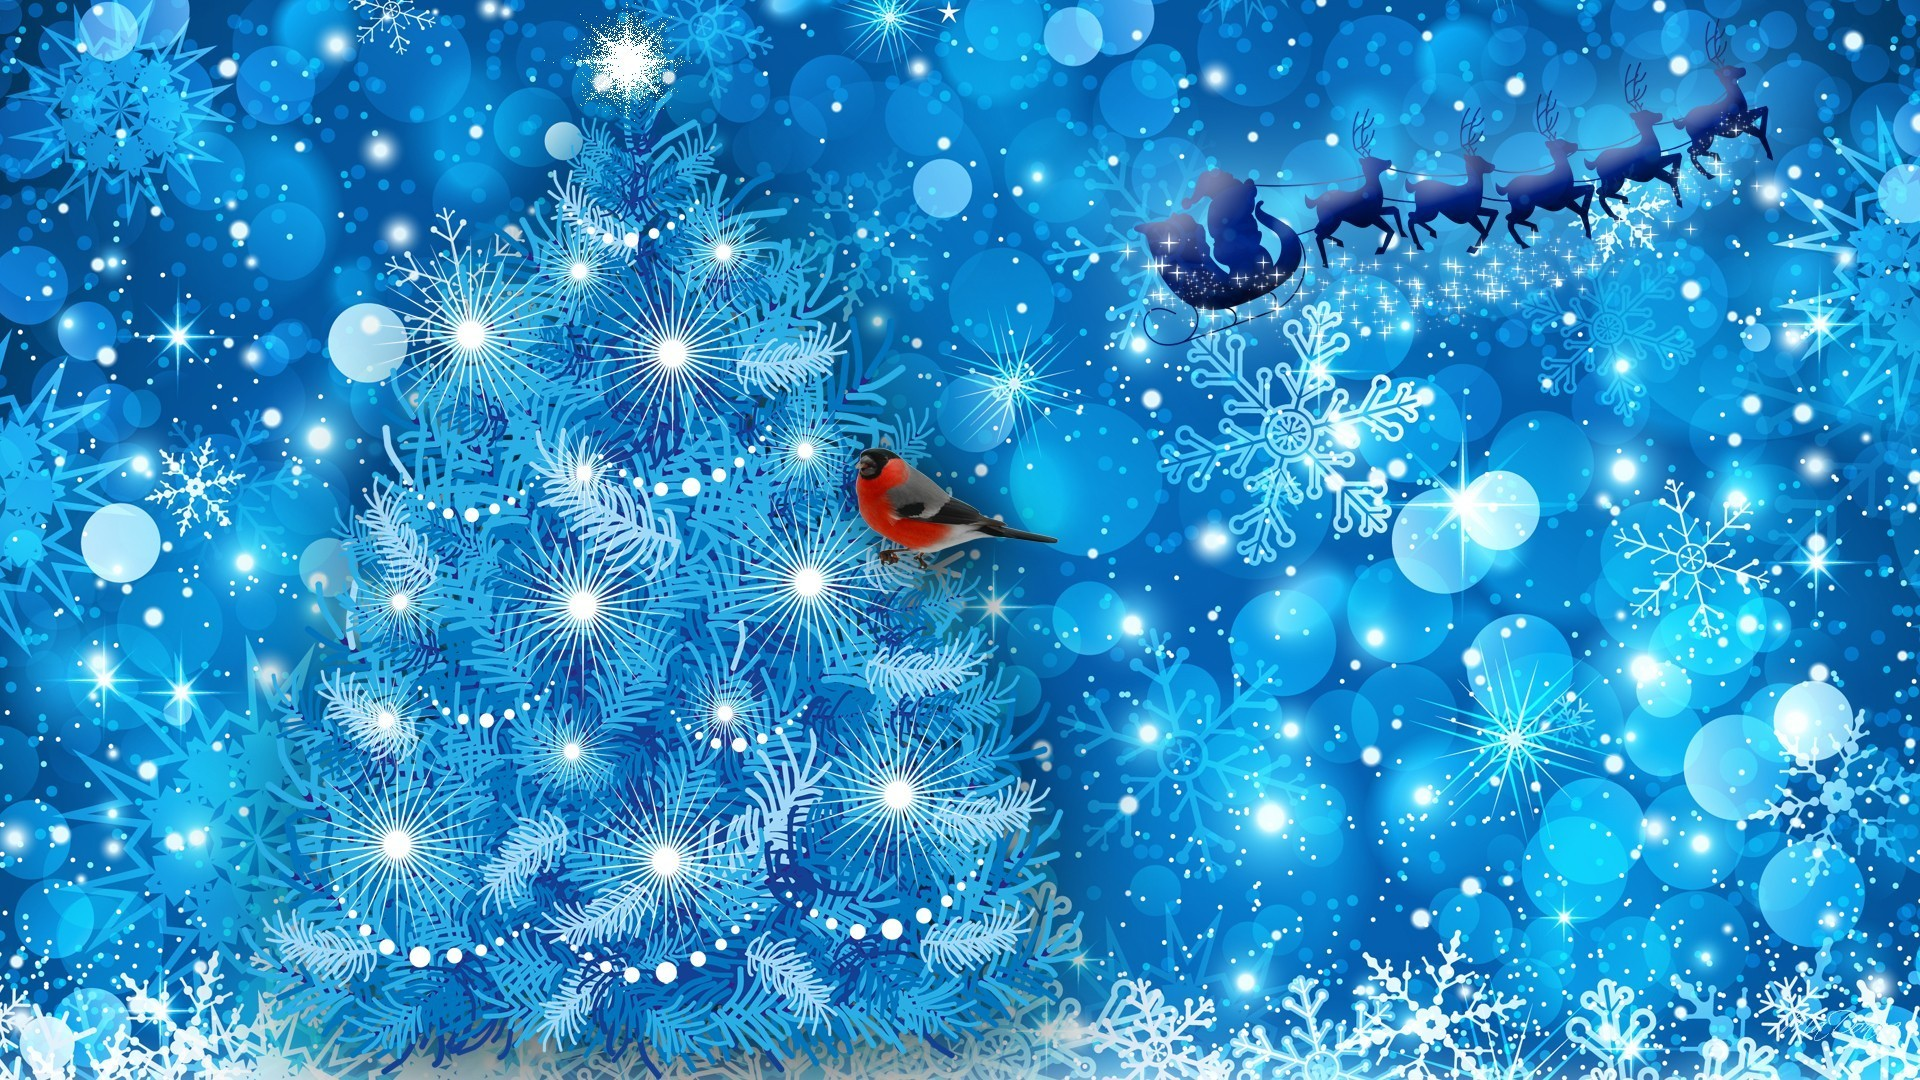 Res: 1920x1080, Blue Holiday Finch Santa Reindeer Snow Tree Claus Christmas Snowflakes  Sparkle Desktop Animated Winter Scenes